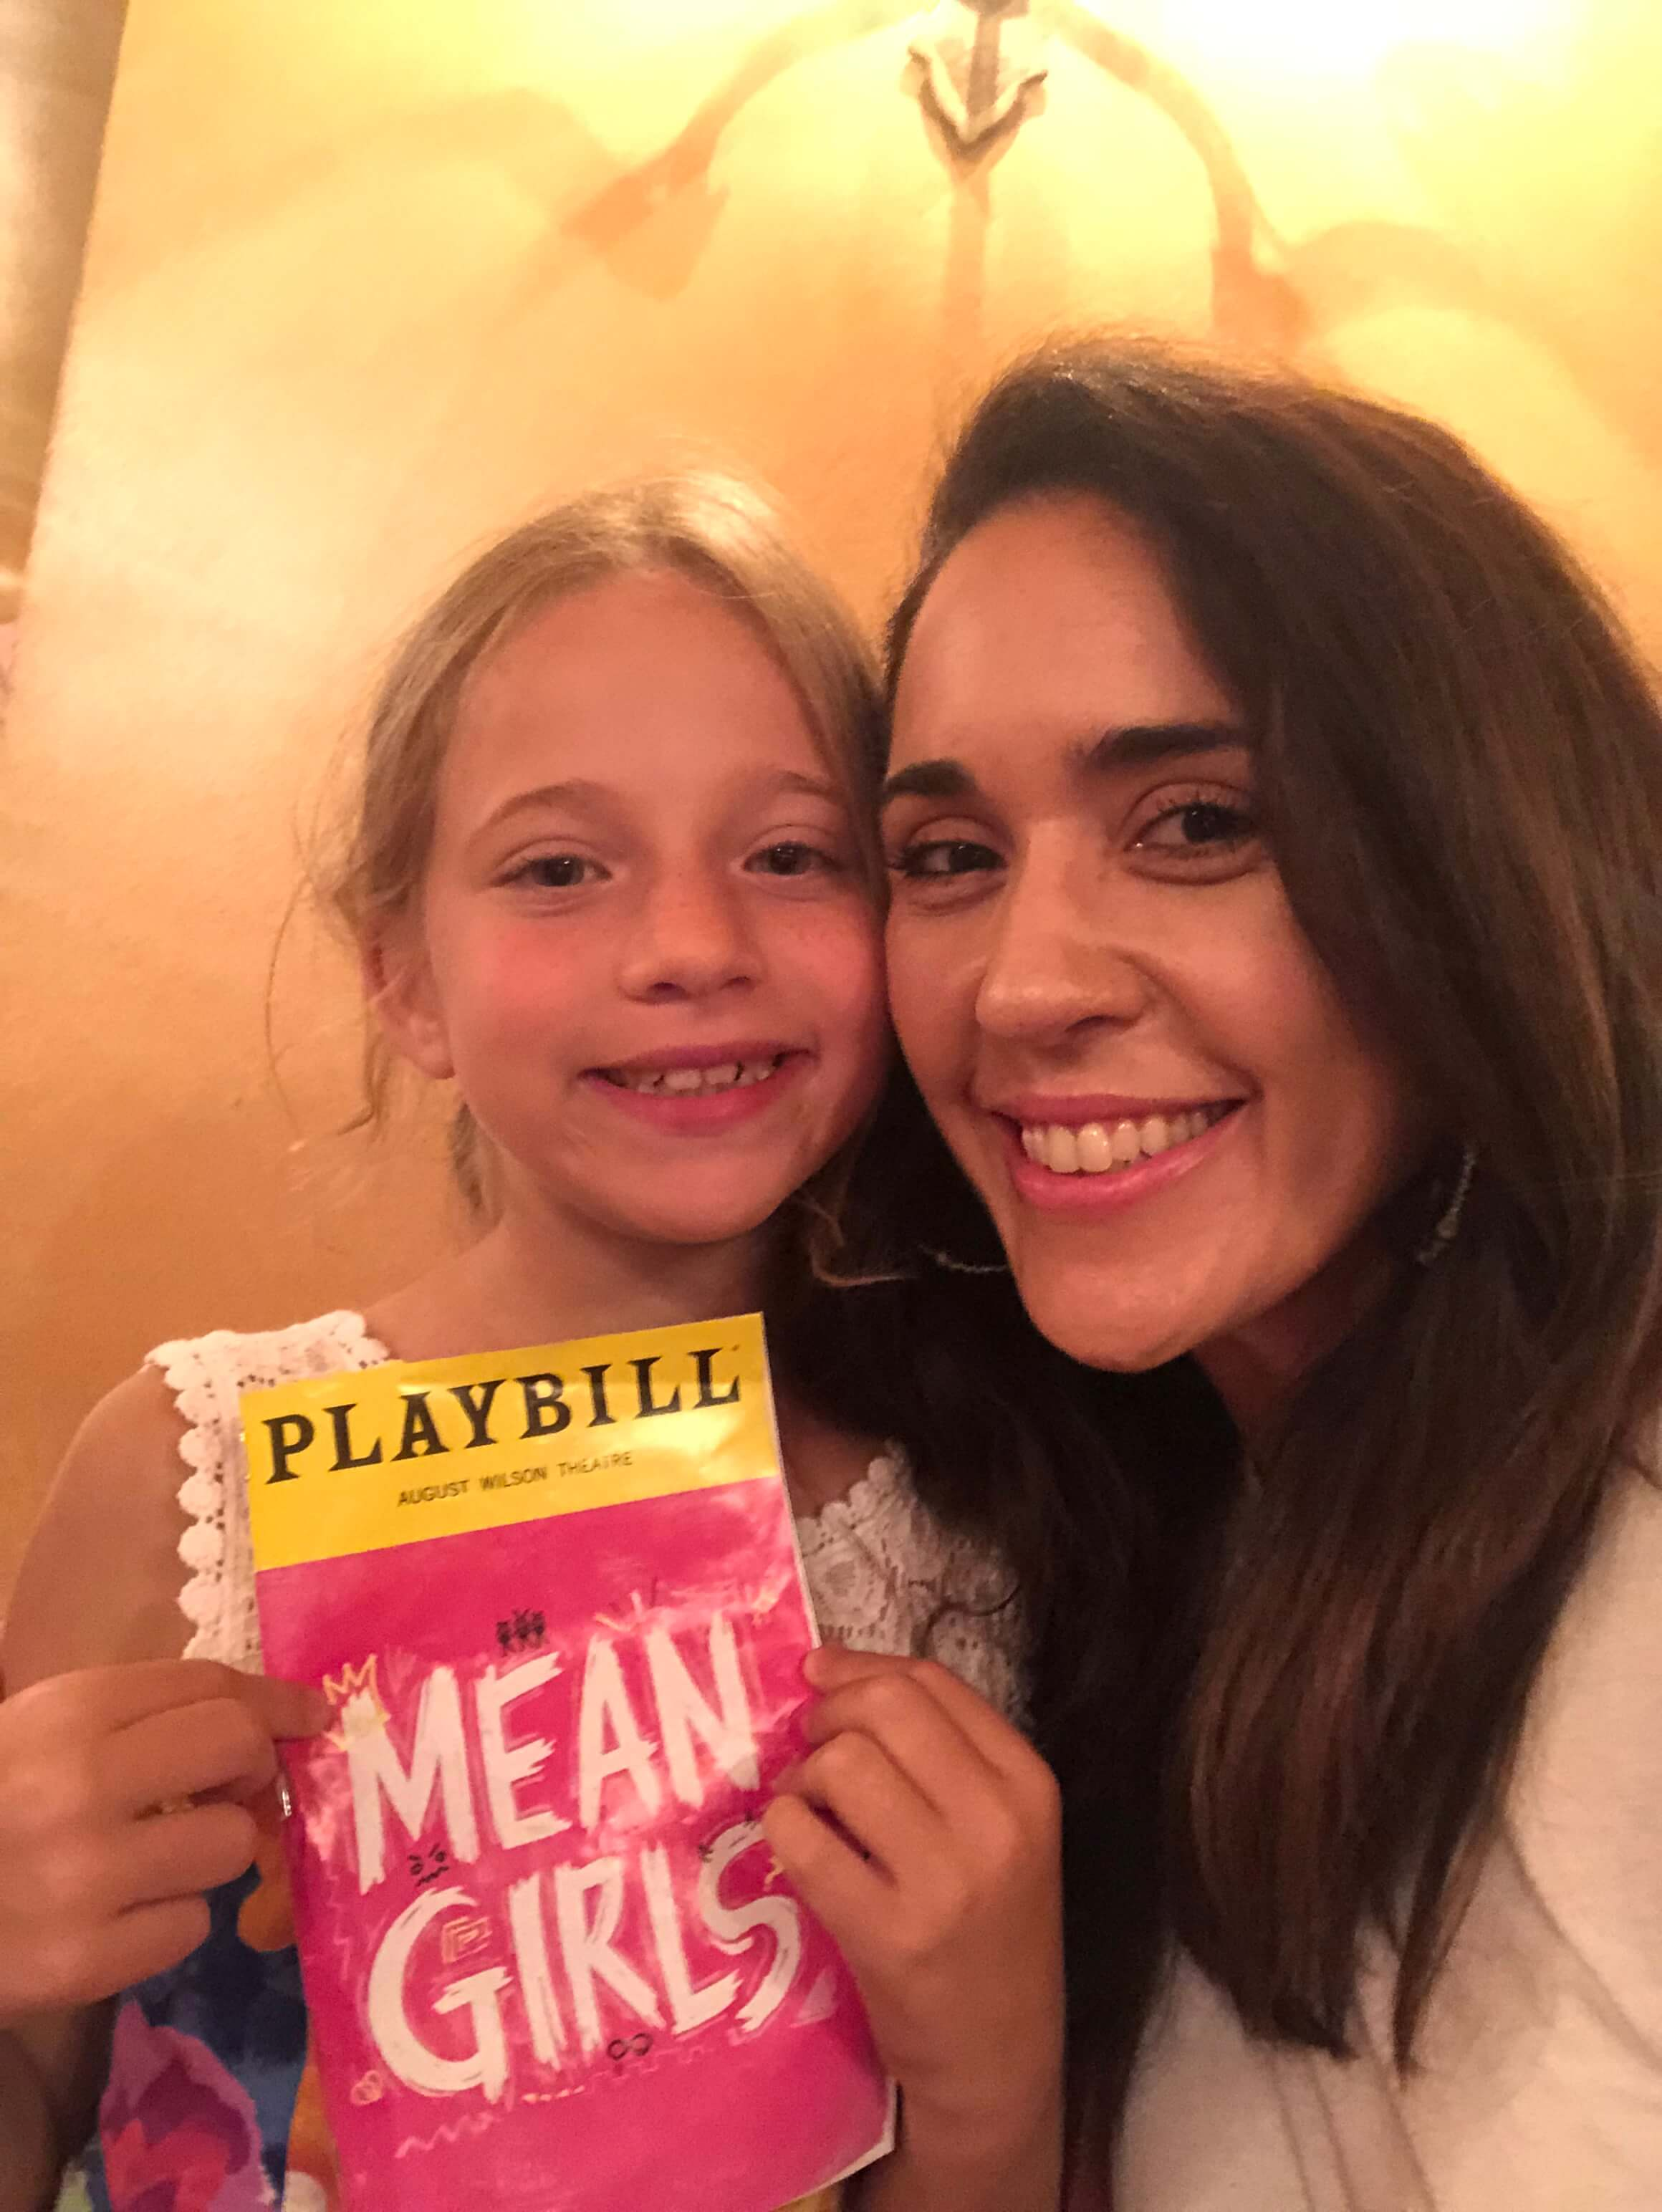 Mean Girls on Broadway with kids